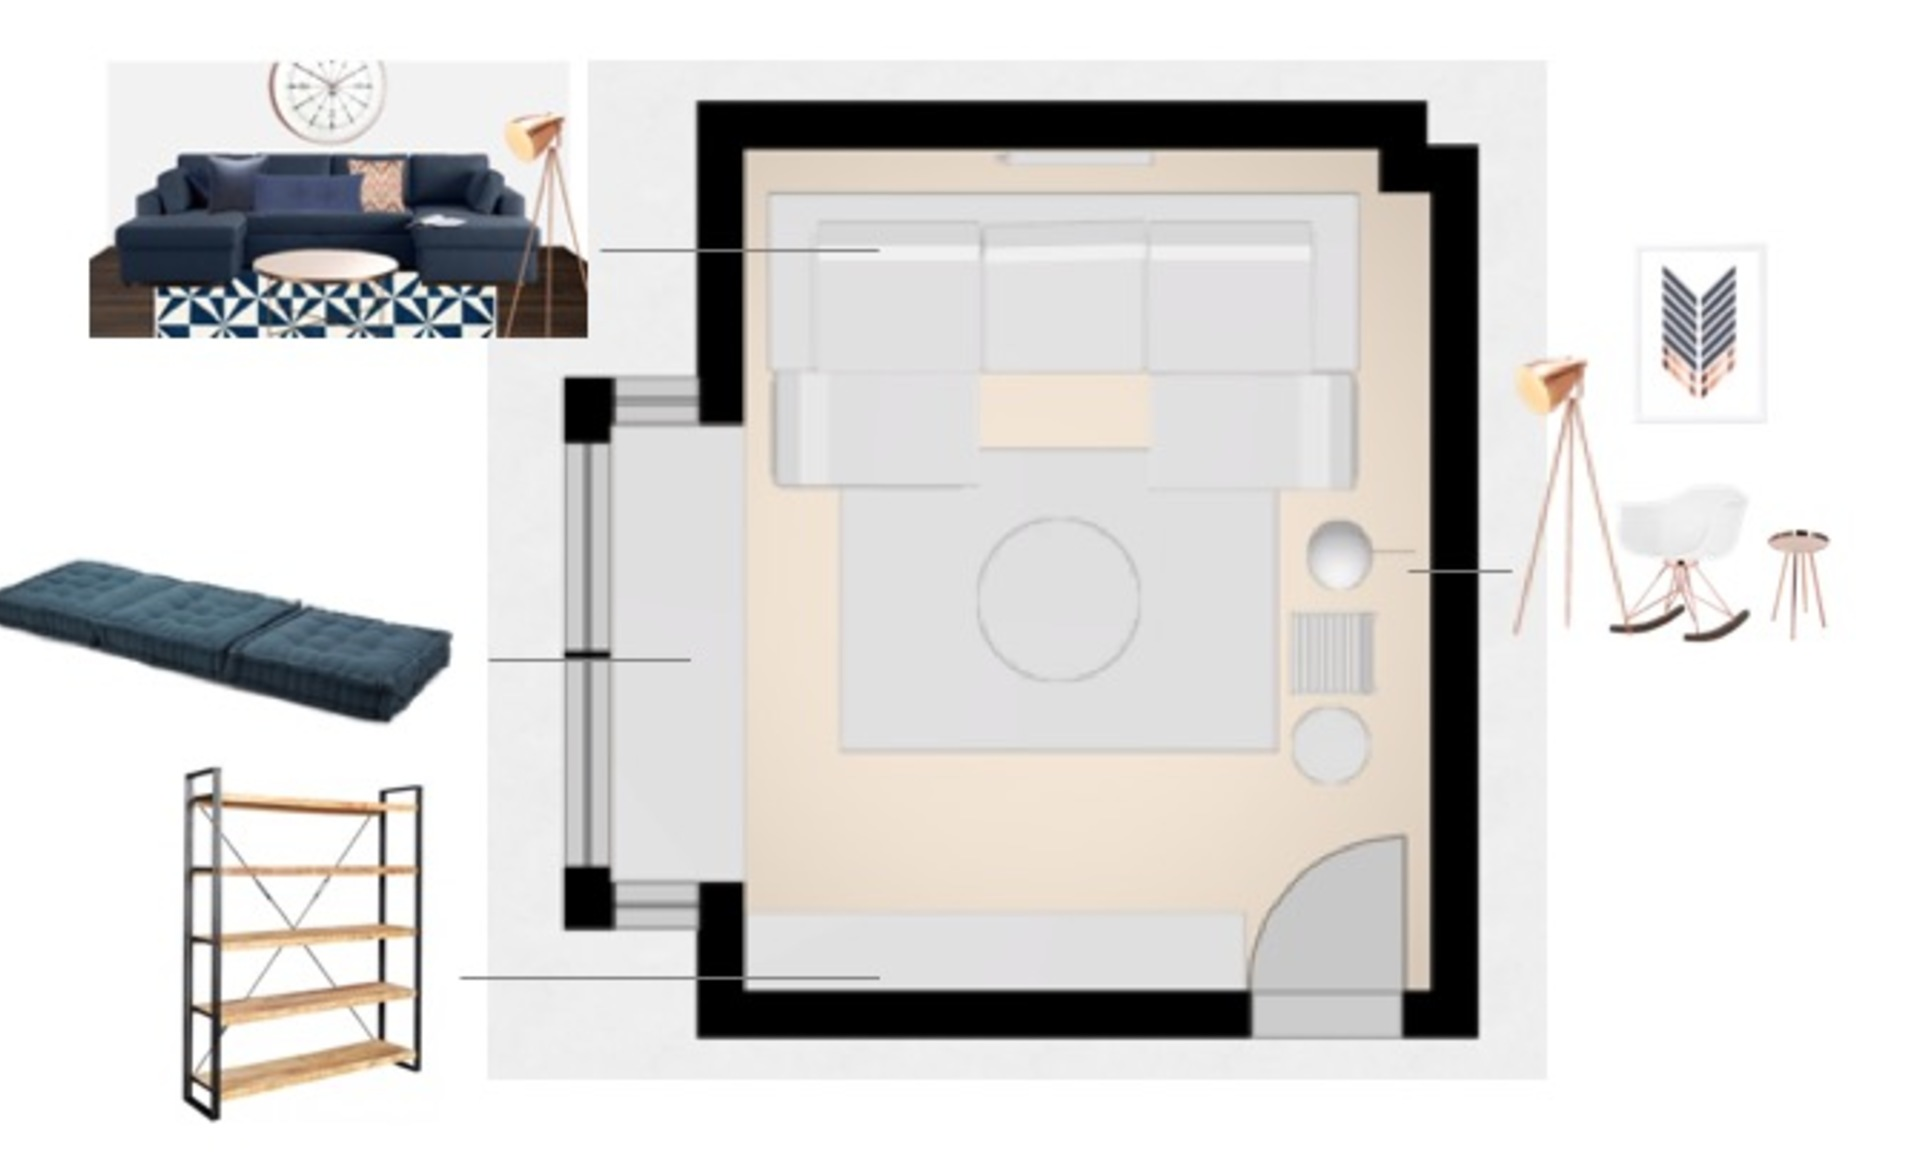 Jb michalstein teenden floorplan